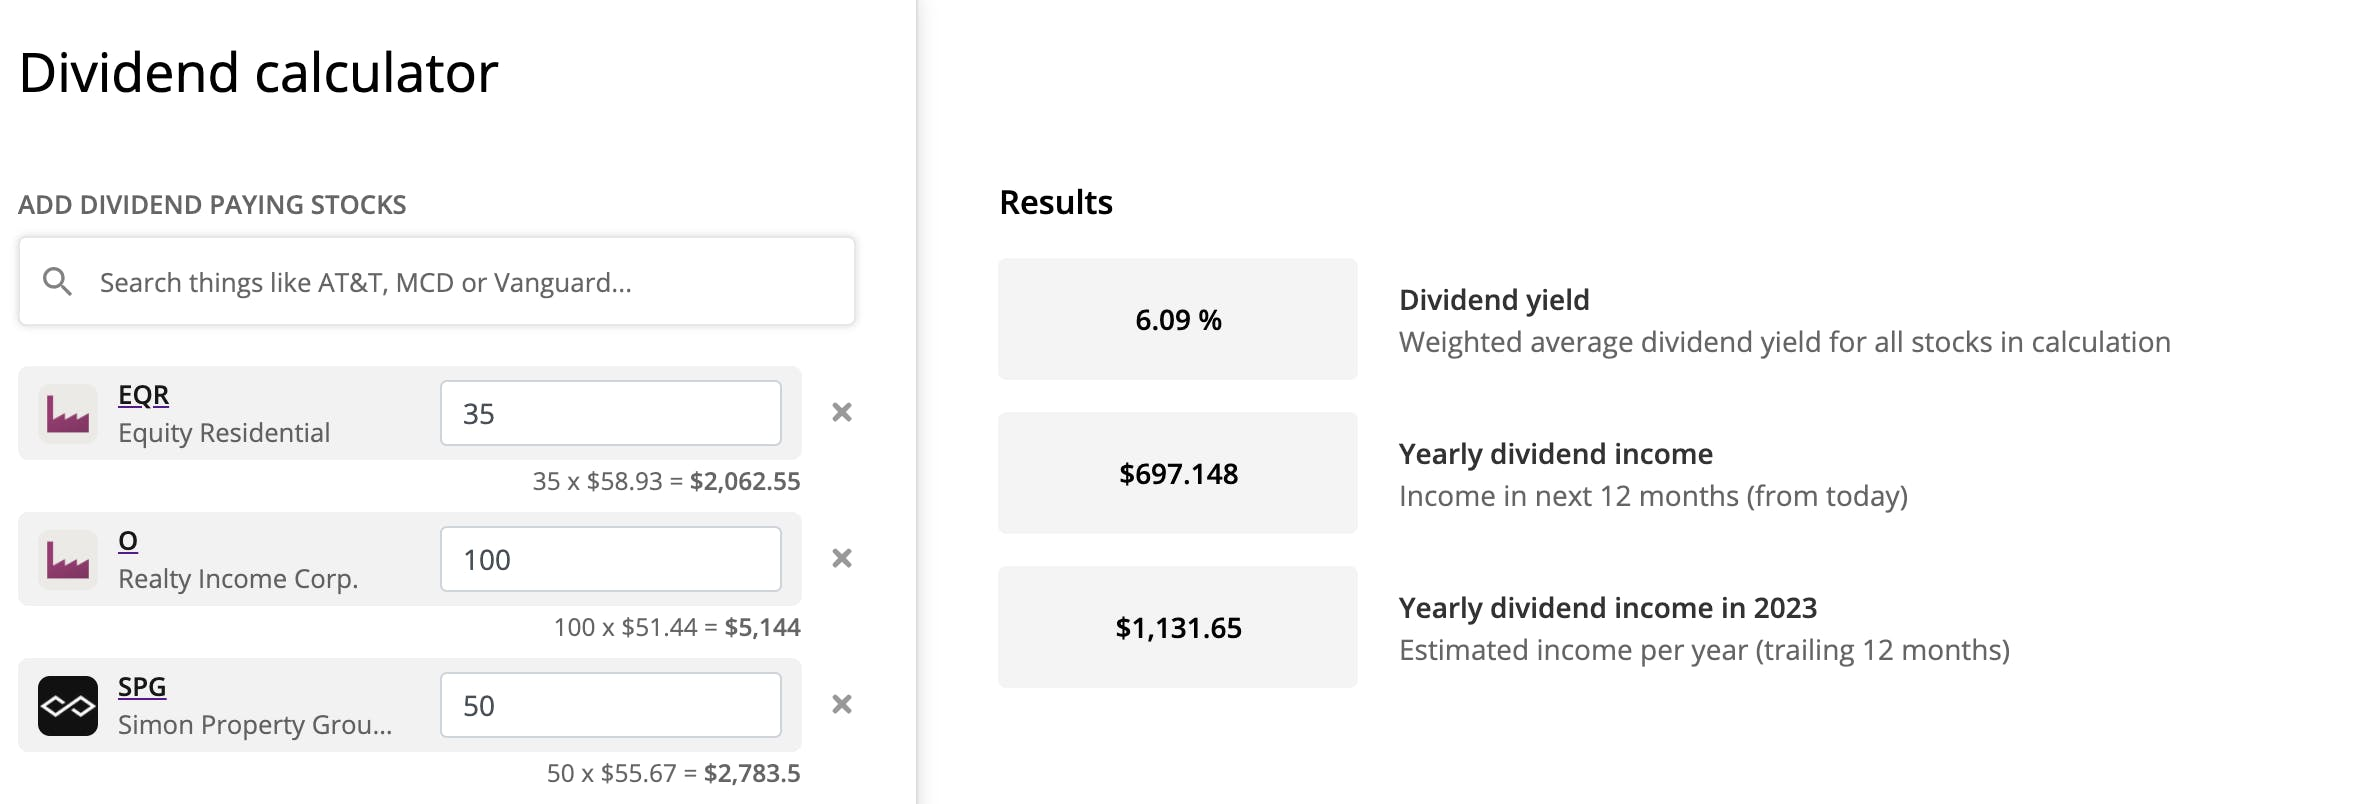 REITs in our dividend calculator